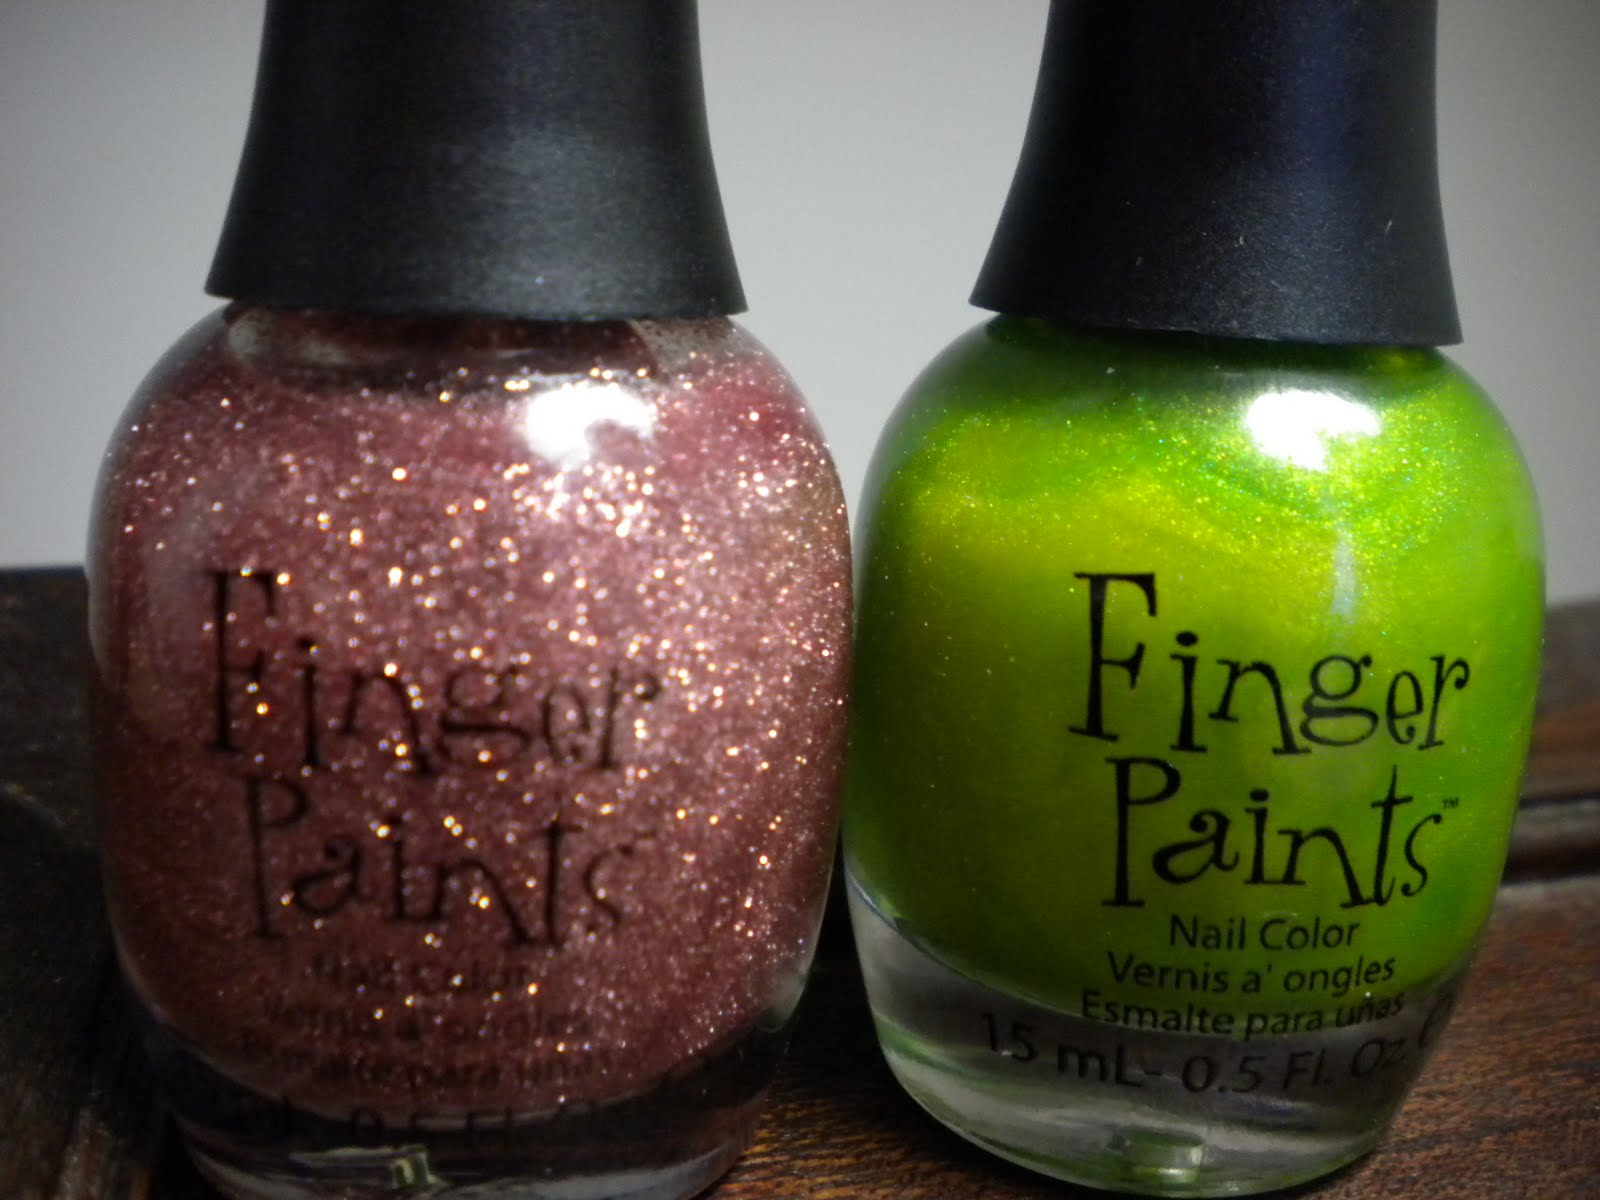 Diary of a Reformed Tomboy: Finger Paints Nail Polish - REVIEW